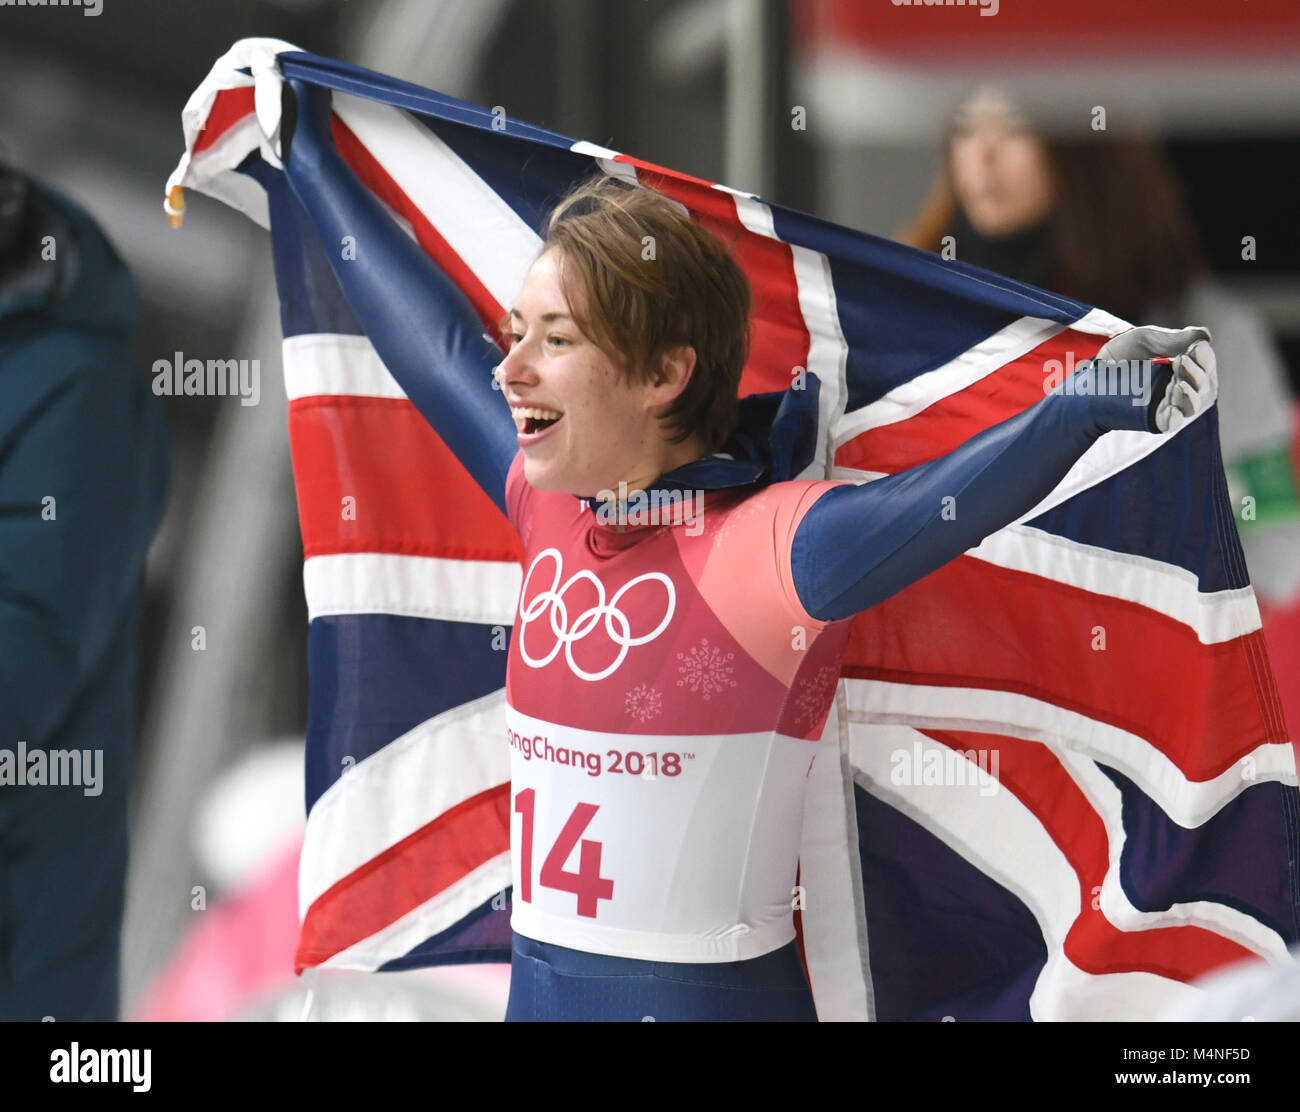 Pyeongchang, South Korea. 17th Feb, 2018. Lizzy Yarnold from the UK celebrating her gold medal at the finish line - Stock Image